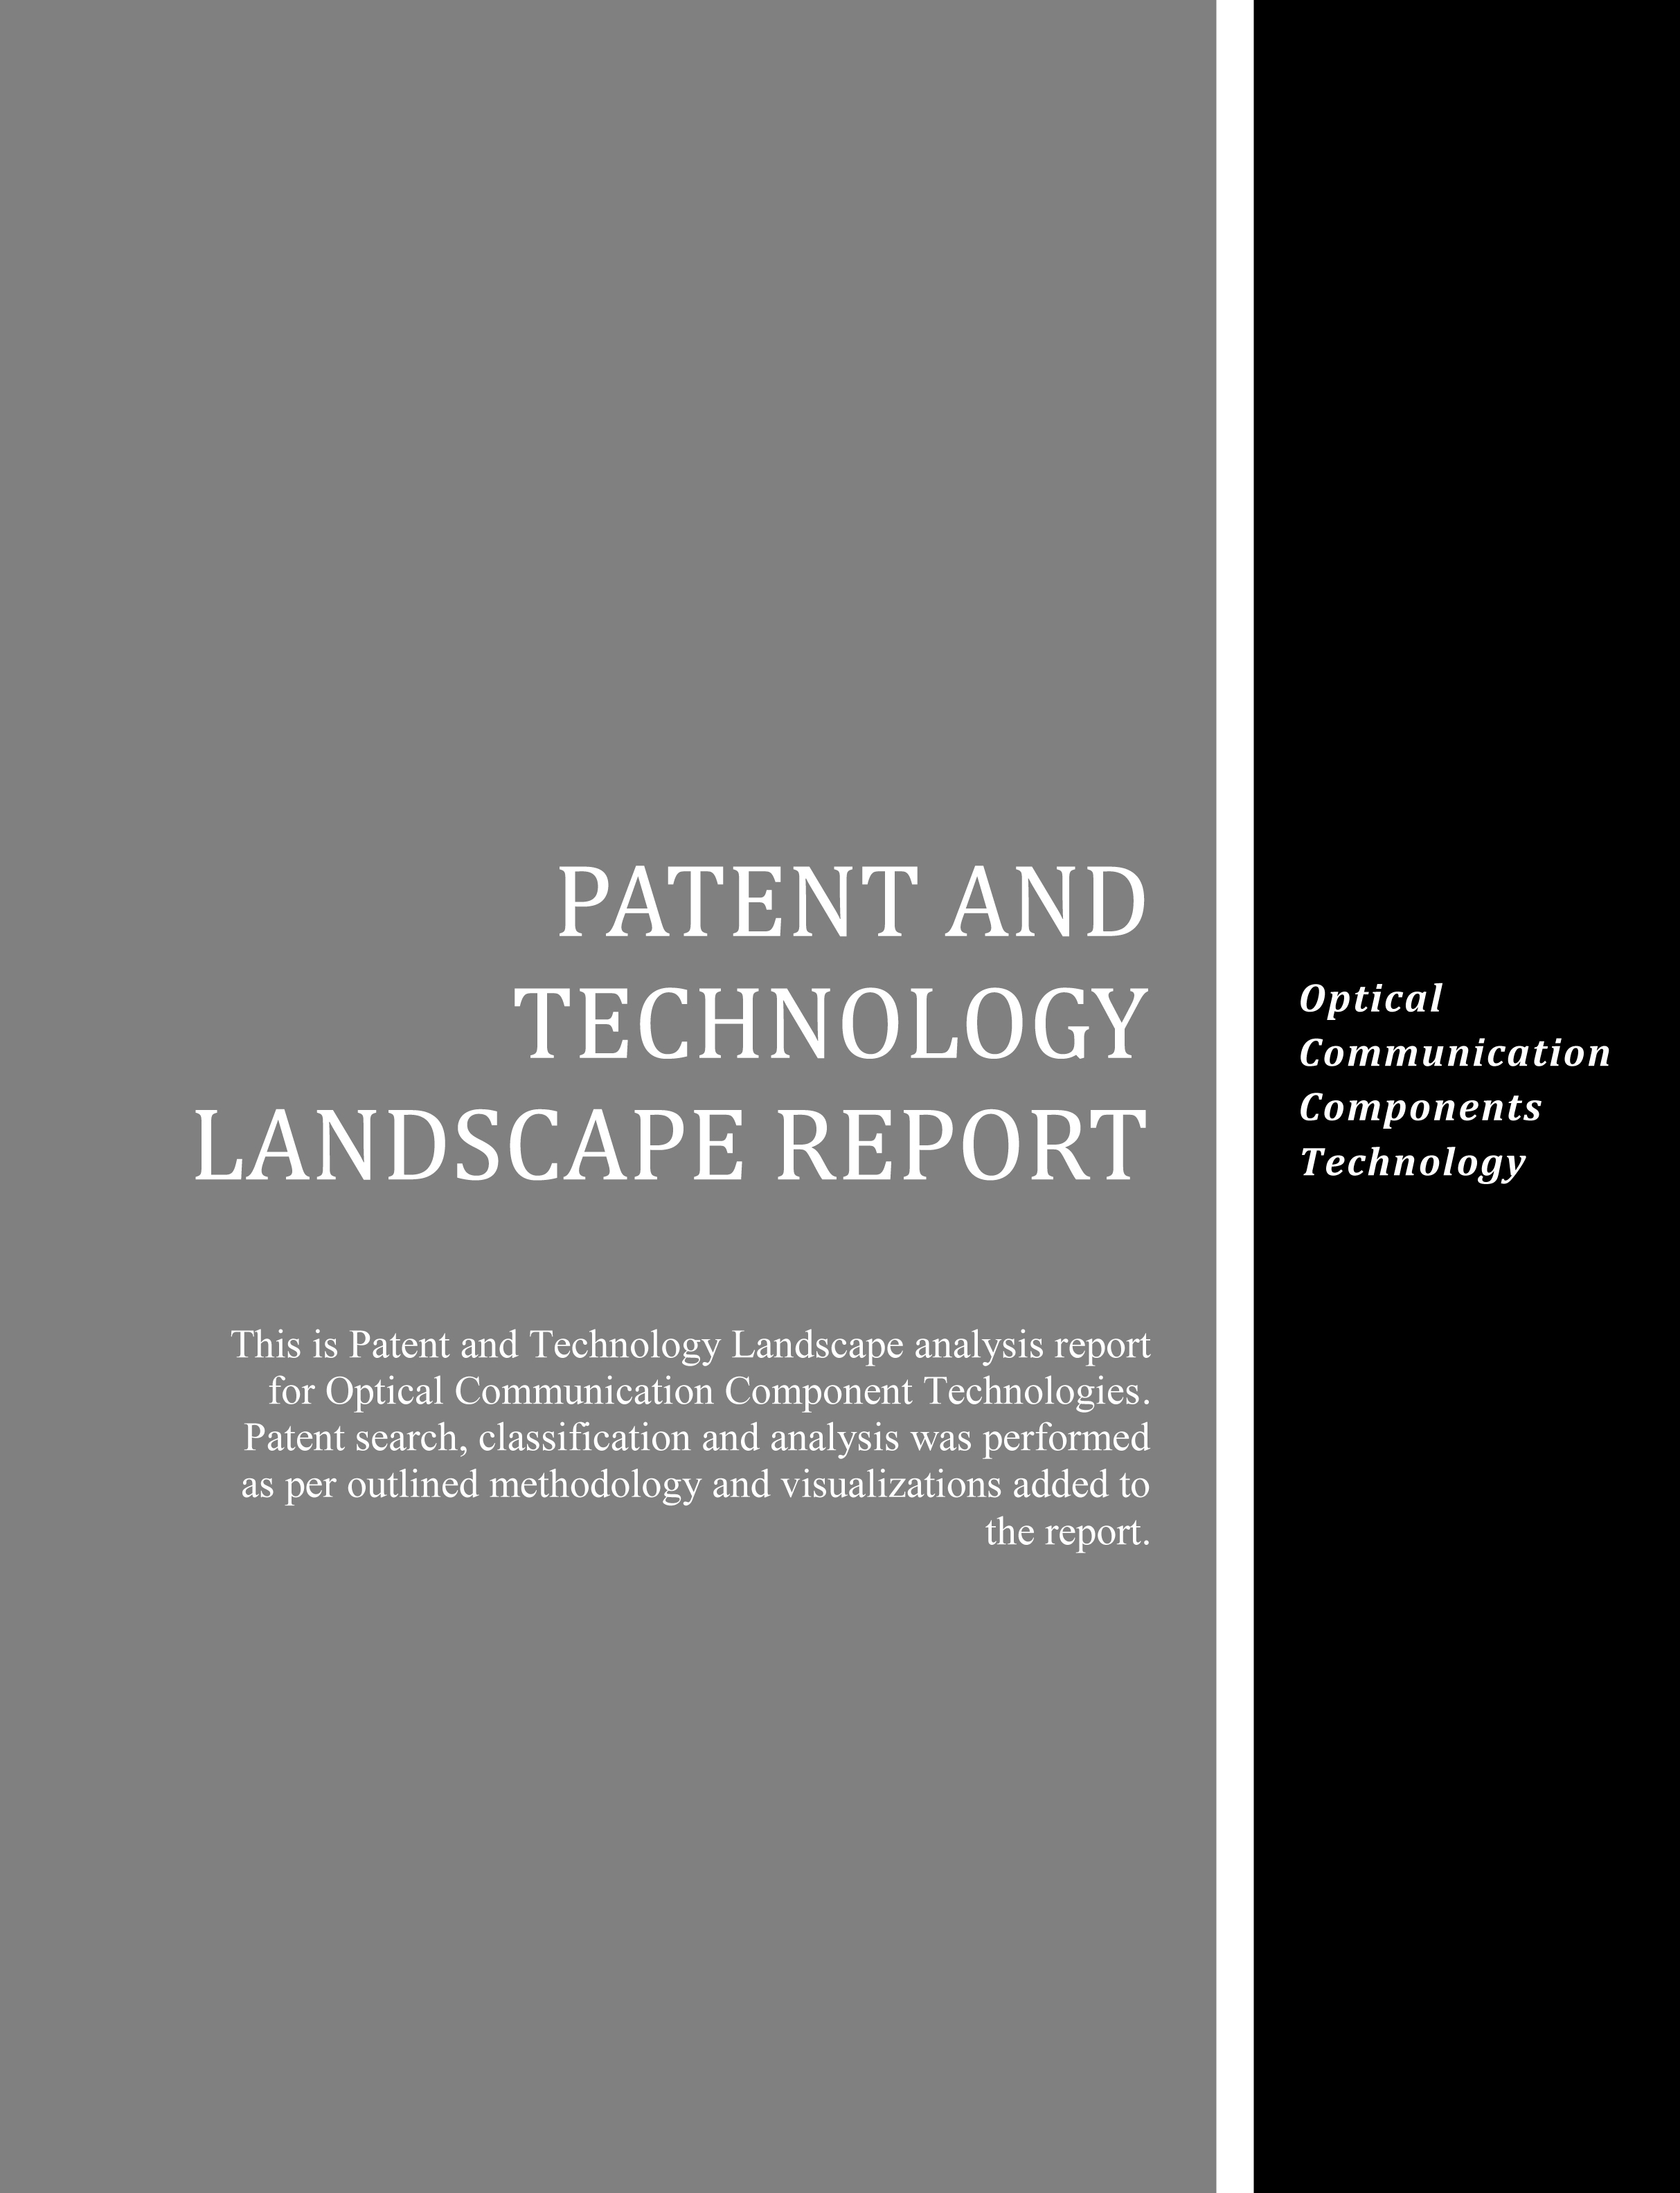 Optical Communication Components Technology Landscape Report